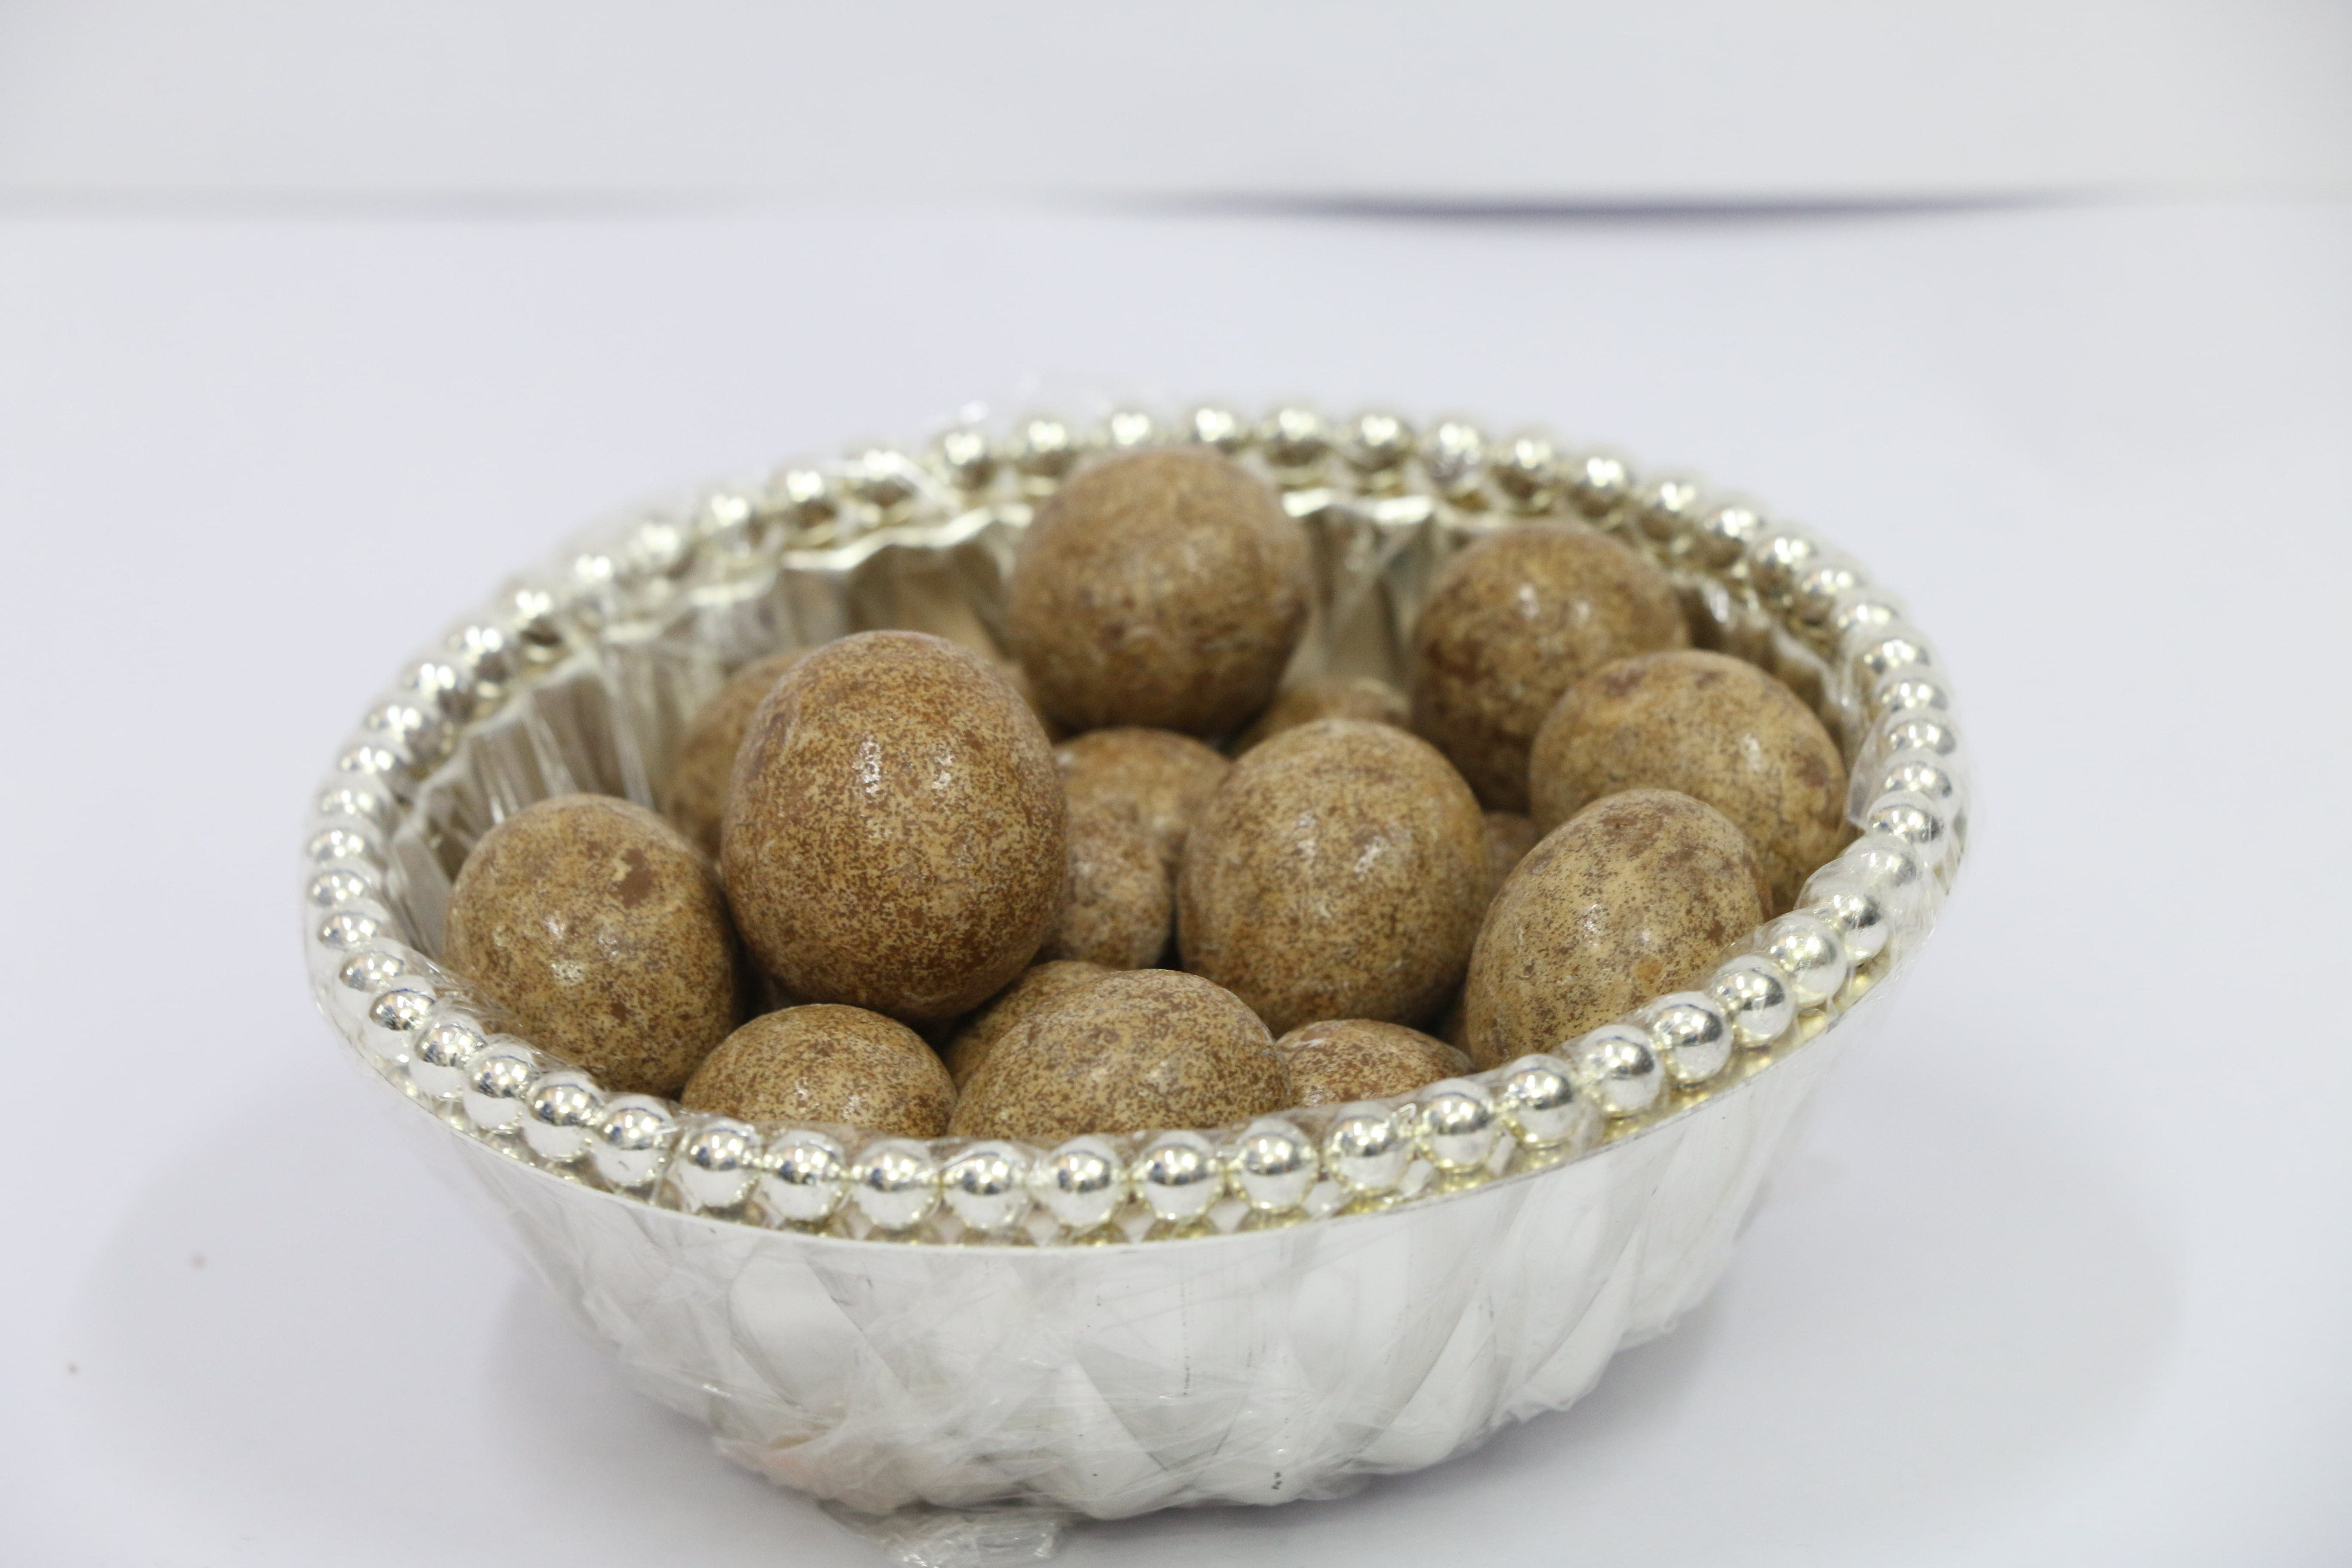 German Silver Plated and Imported bowl in Bangalore Sambhav Products  We also import products as well as export.  German silver plated bowls gives an elegant look.  Shape : Round Metal : German Silver Plated  Quality : Superior Quality  Long Lasting Period : 10 Years.